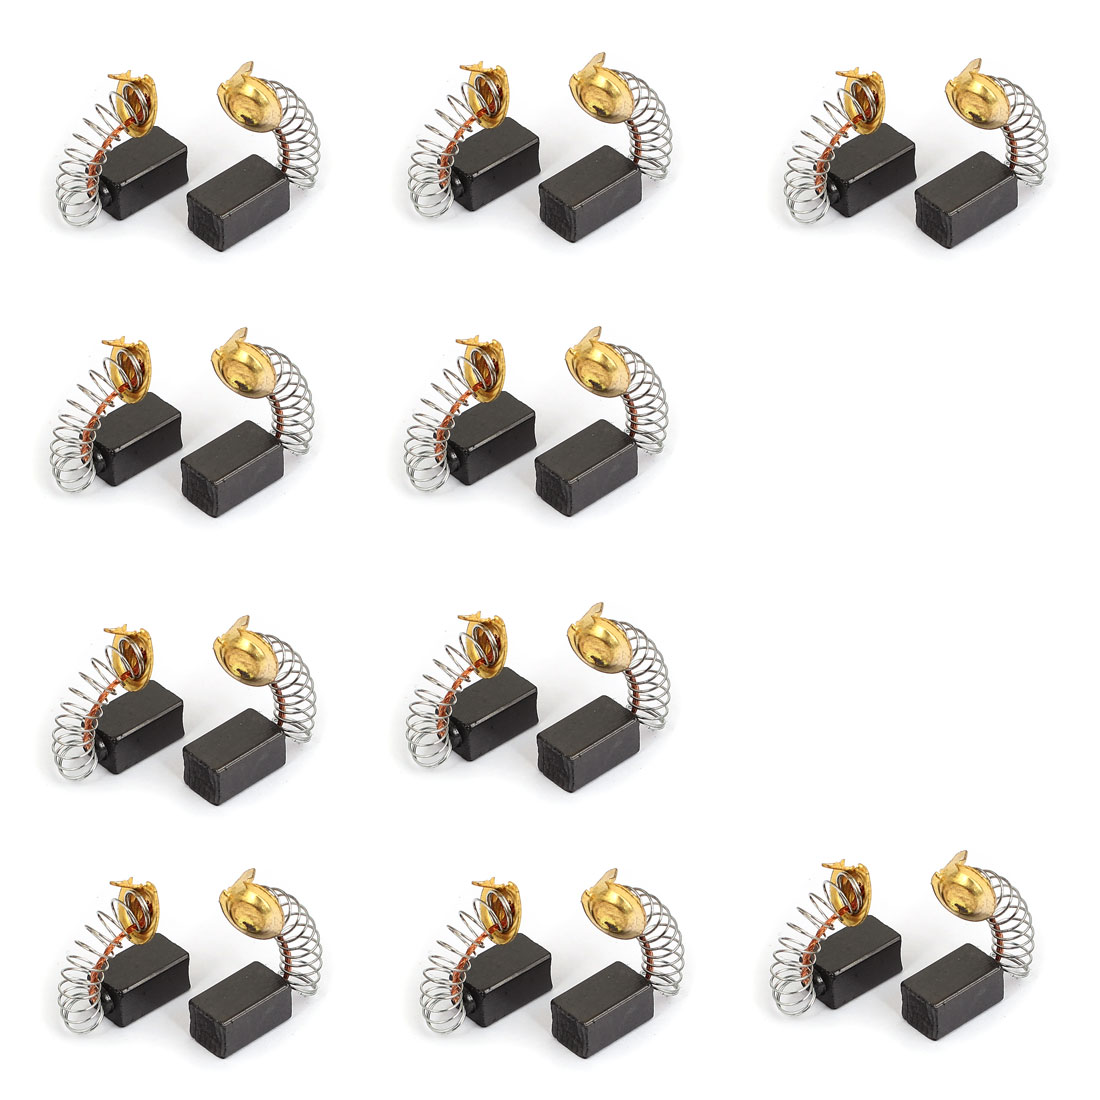 13mm x 8mm x 6mm Motor Carbon Brushes 20 Pcs for Generic Electric Motor